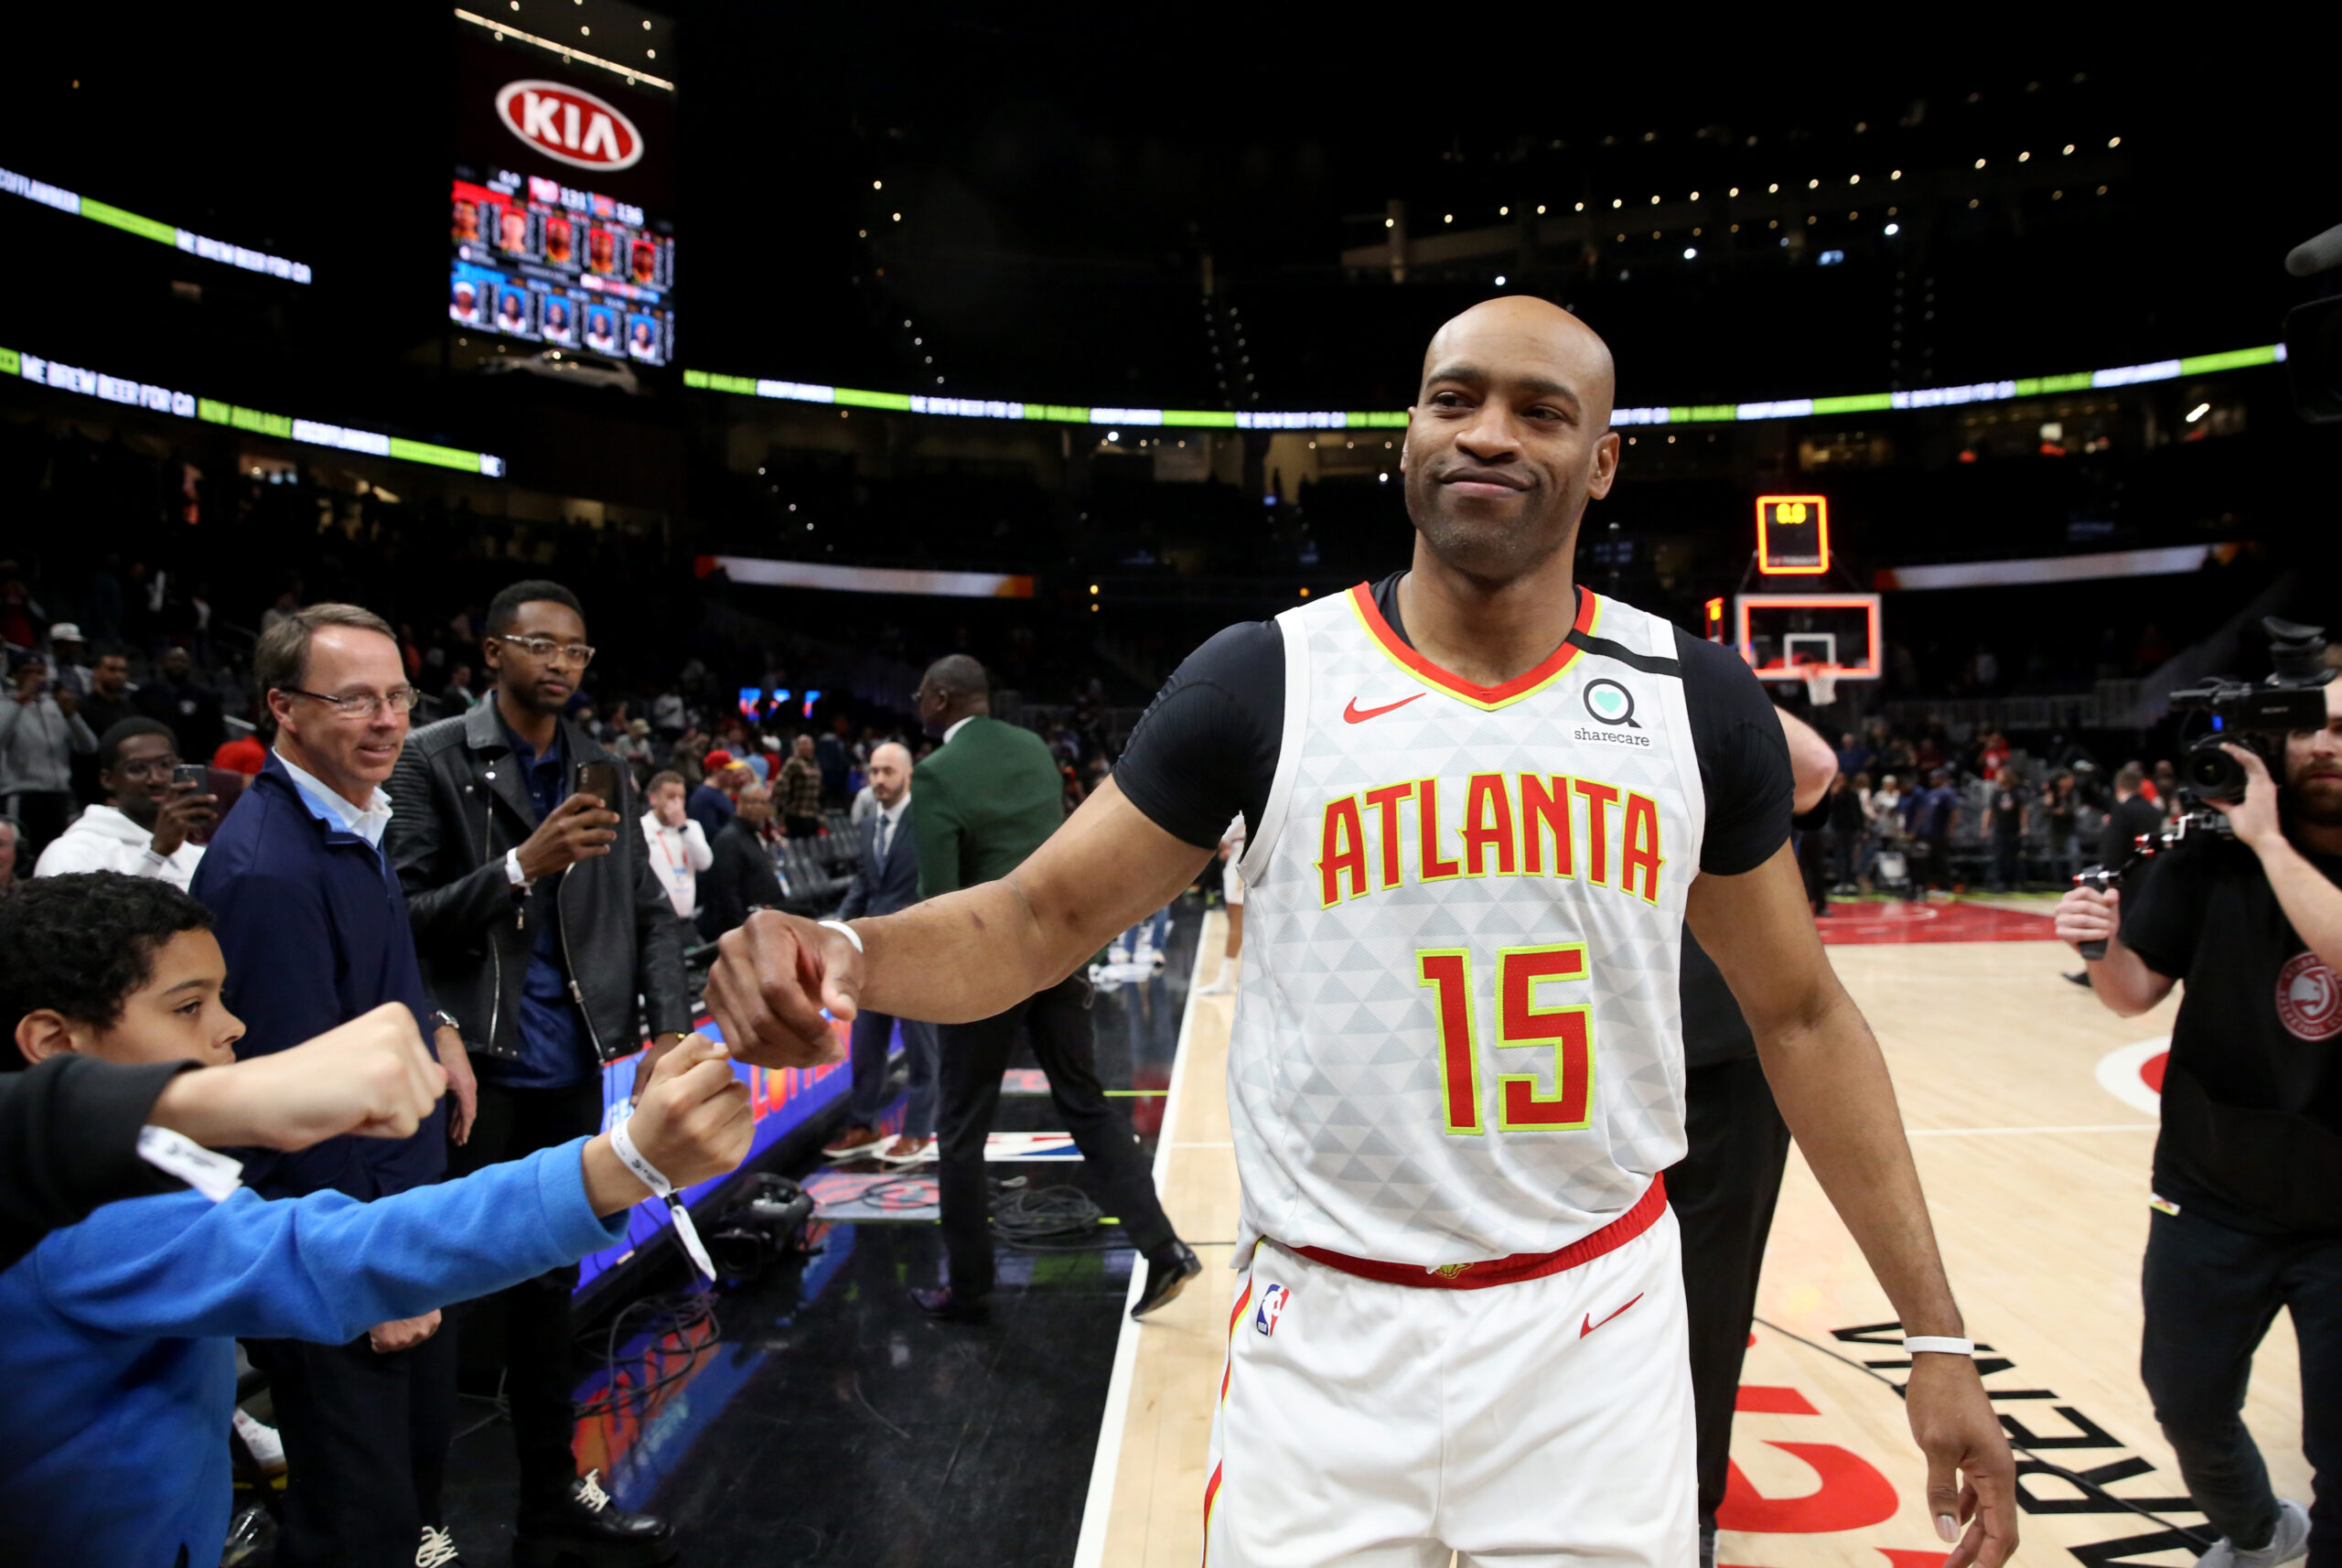 Vince Carter at peace if he played in his final NBA game